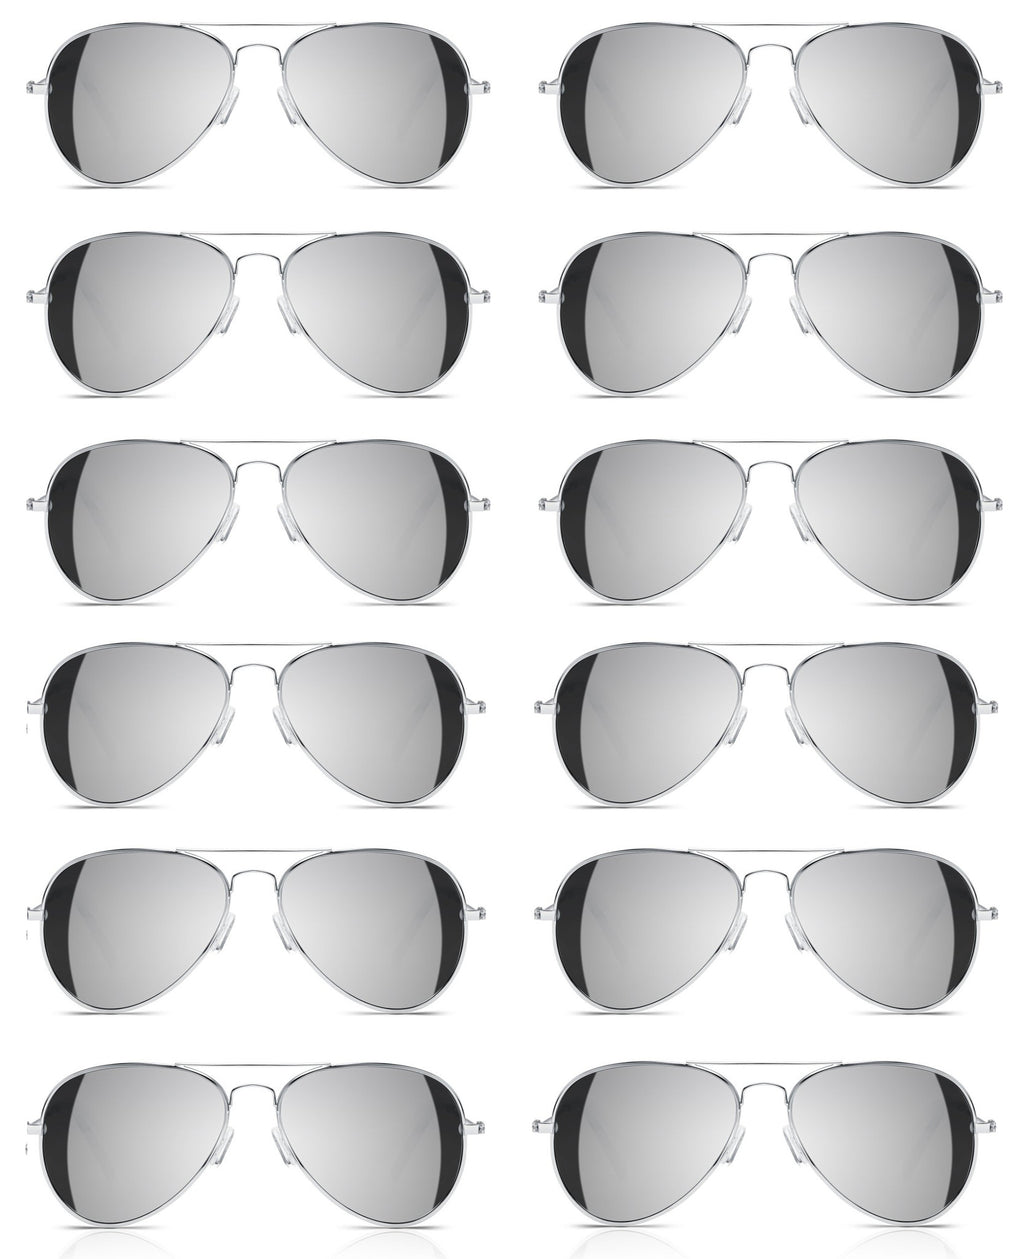 *LOT OF 24* Full Mirror Aviator Sunglasses w/ Metal Silver Frame Classic Retro - Neon Nation